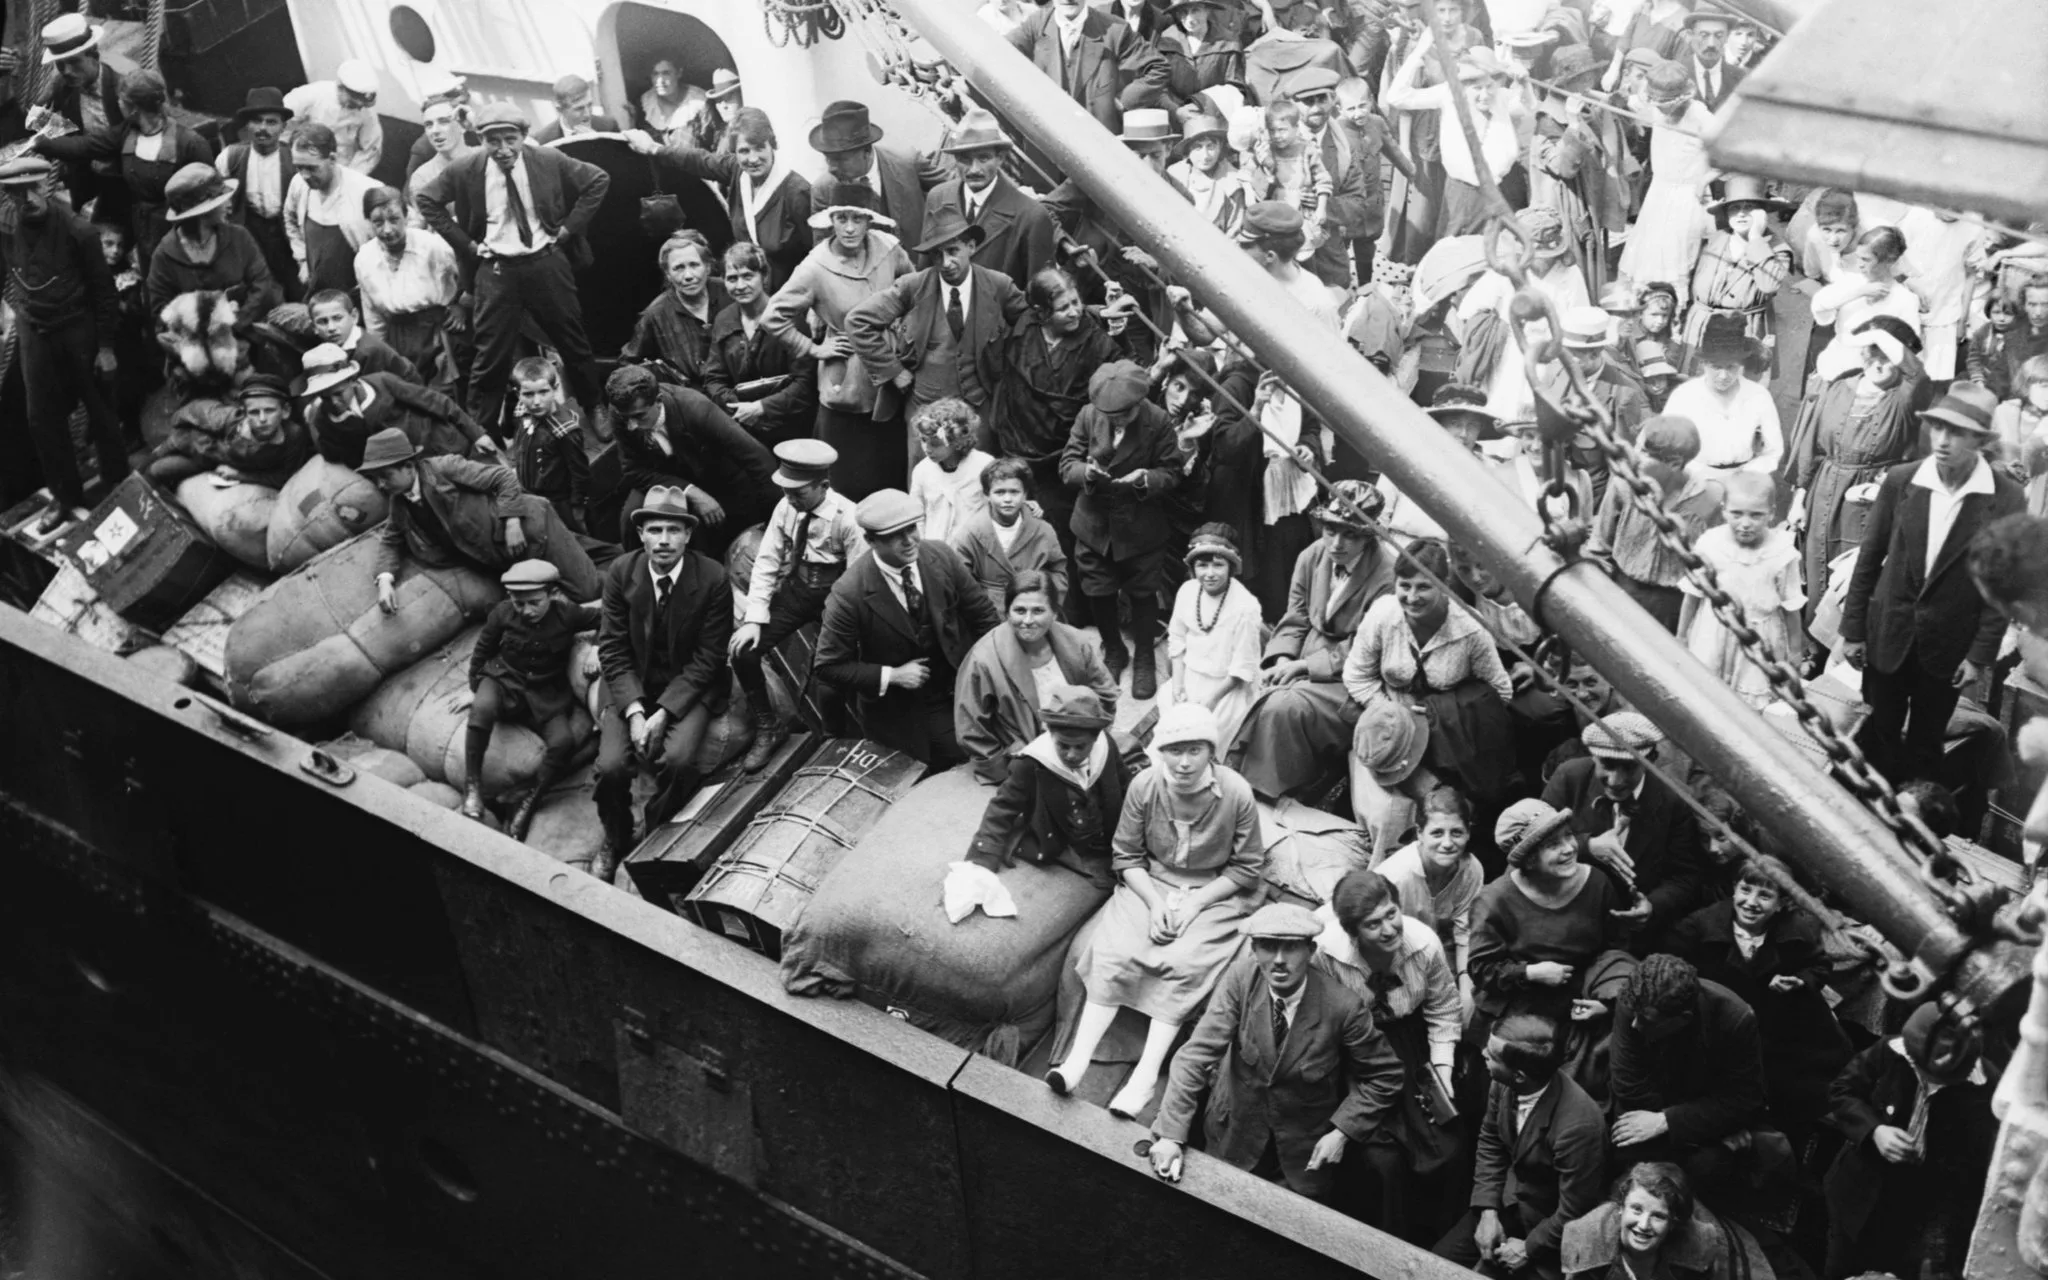 September 1920, Immigrants on Deck of the Kroonland